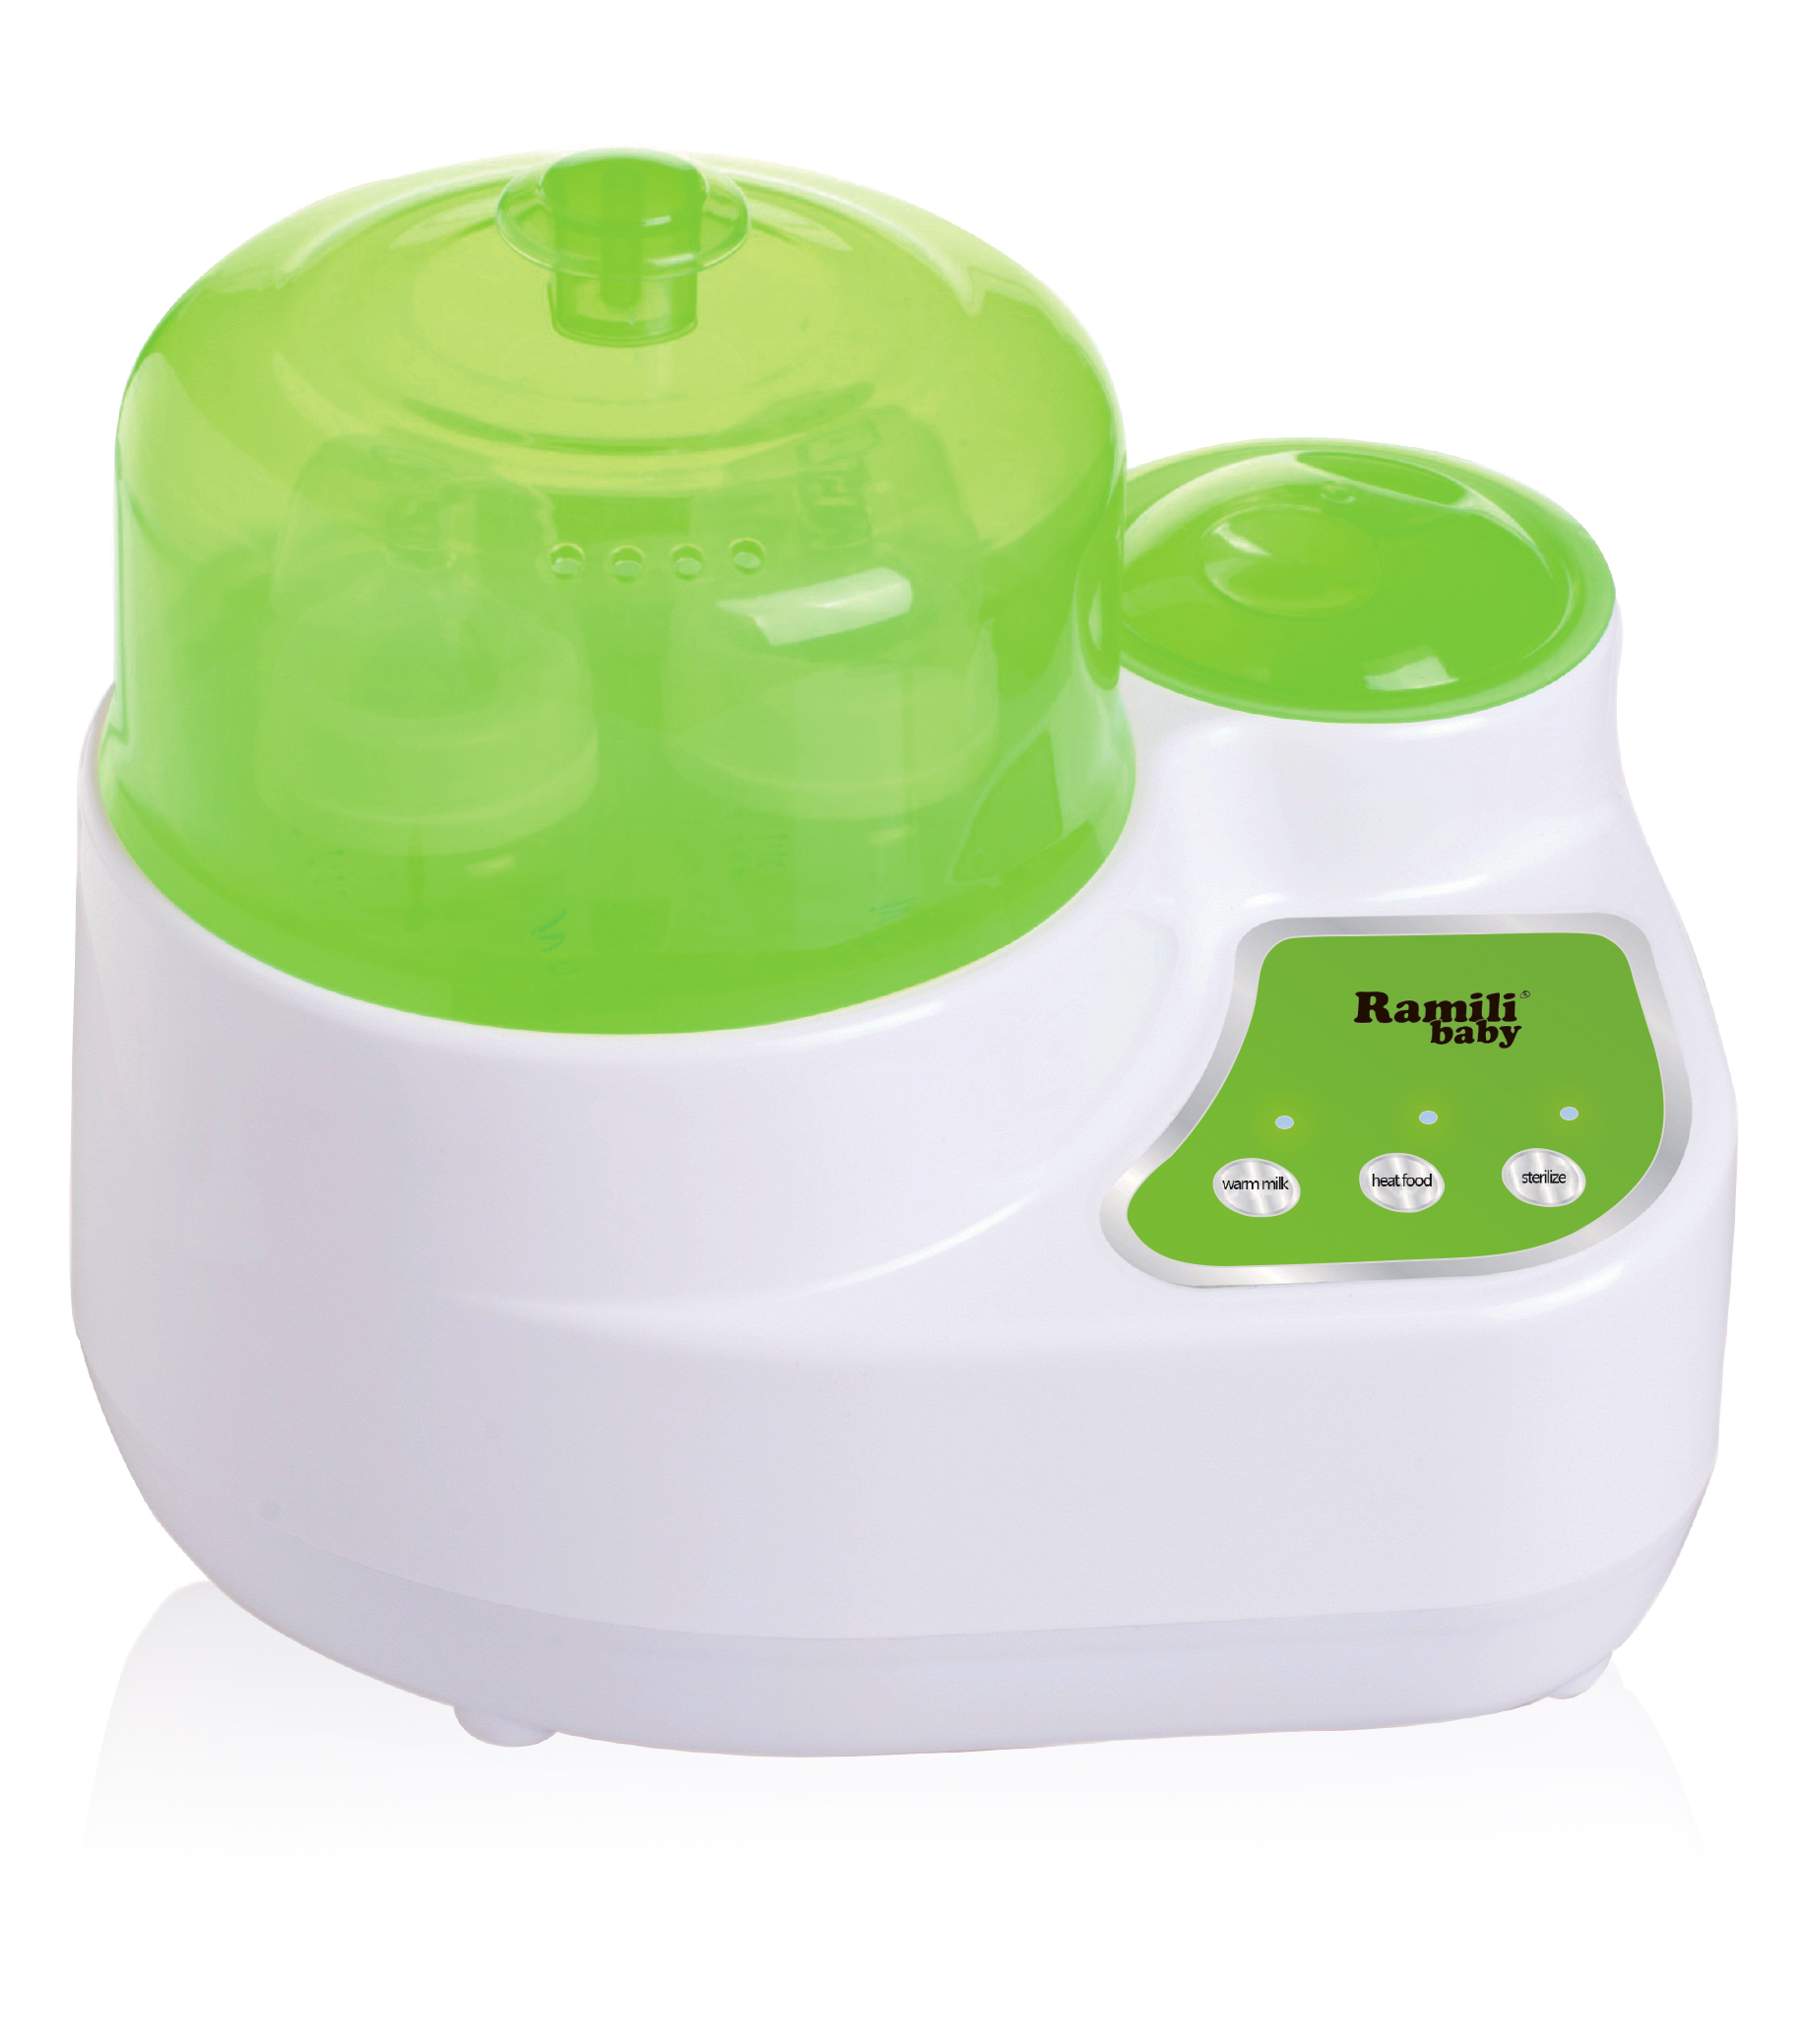 Ramili<sup>®</sup> 3 in 1 Baby Bottle Sterilizer & Warmer BSS250